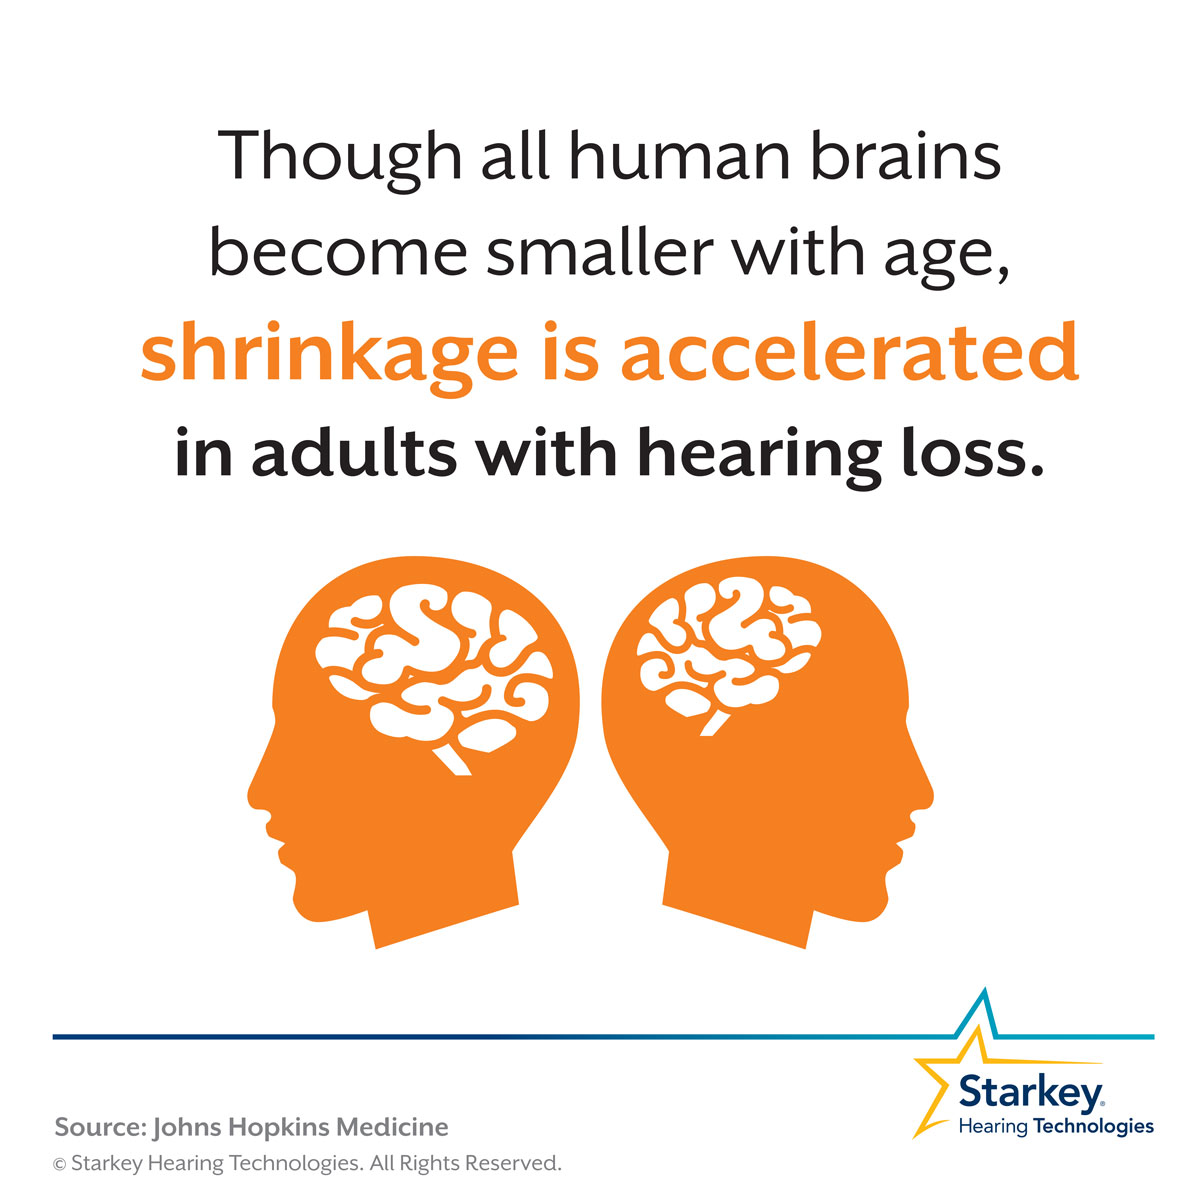 Hearing Loss Tied to Faster Brain Shrinkage With Age